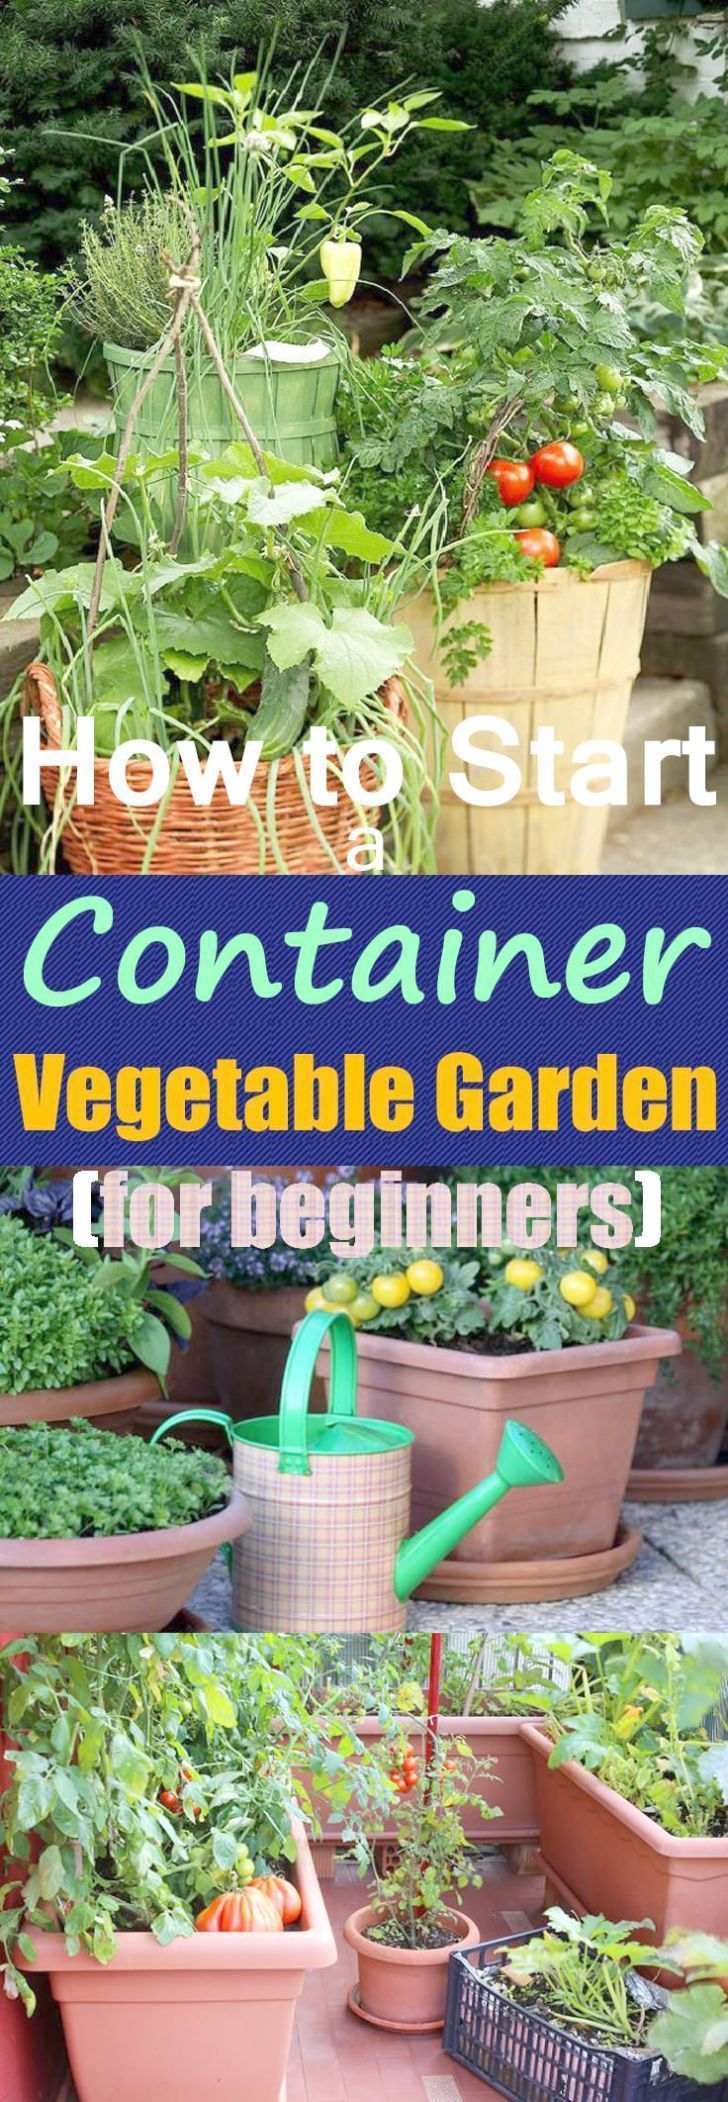 14ca506f0870ea70226f7aa9fcf81e25 - The Vegetable Gardener's Container Bible Pdf